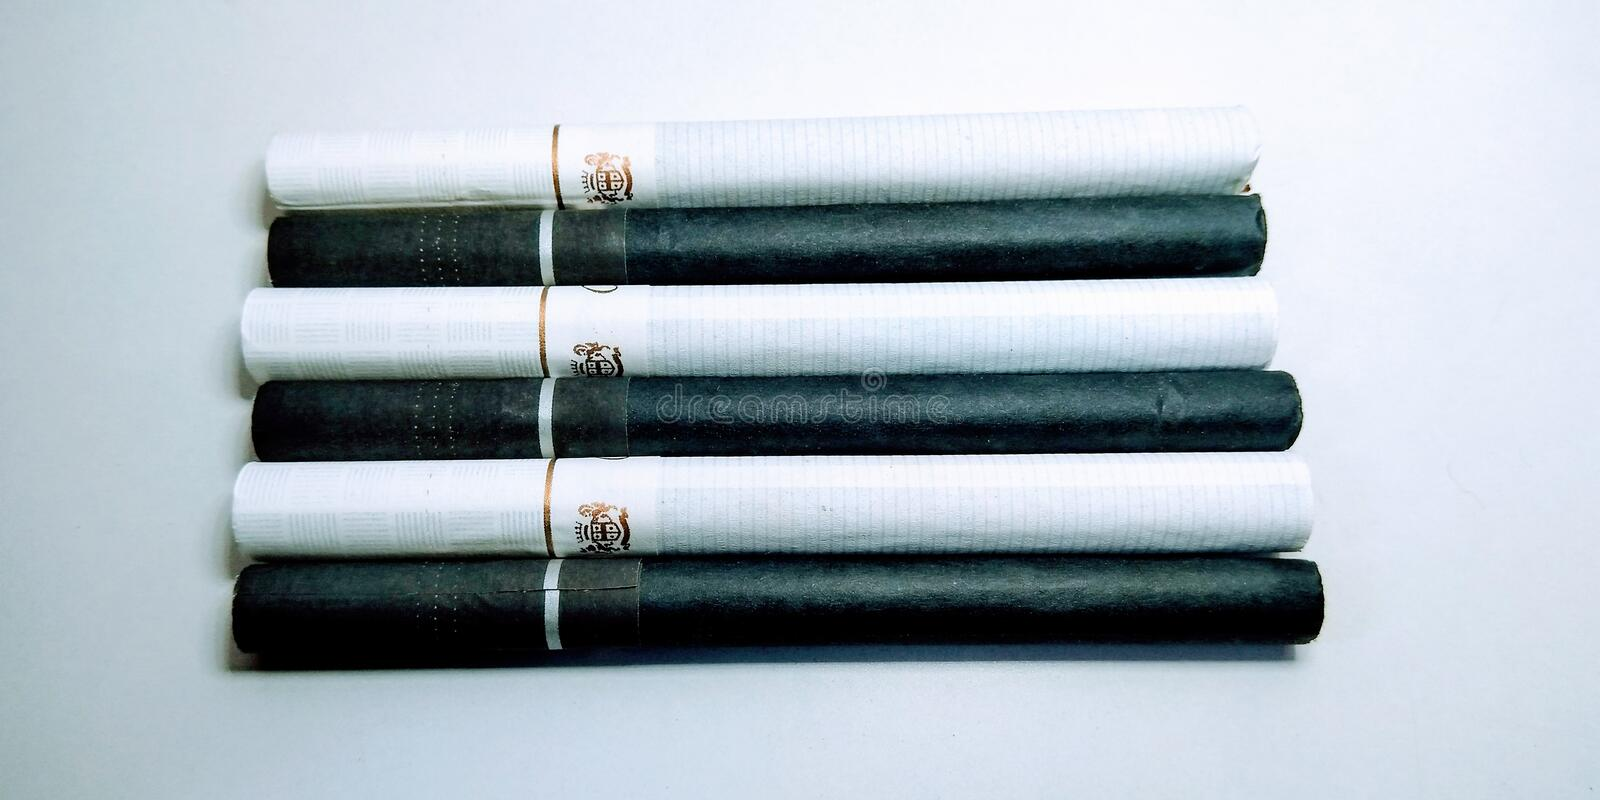 A picture of tobacco cigarettes  on white background  , stock images